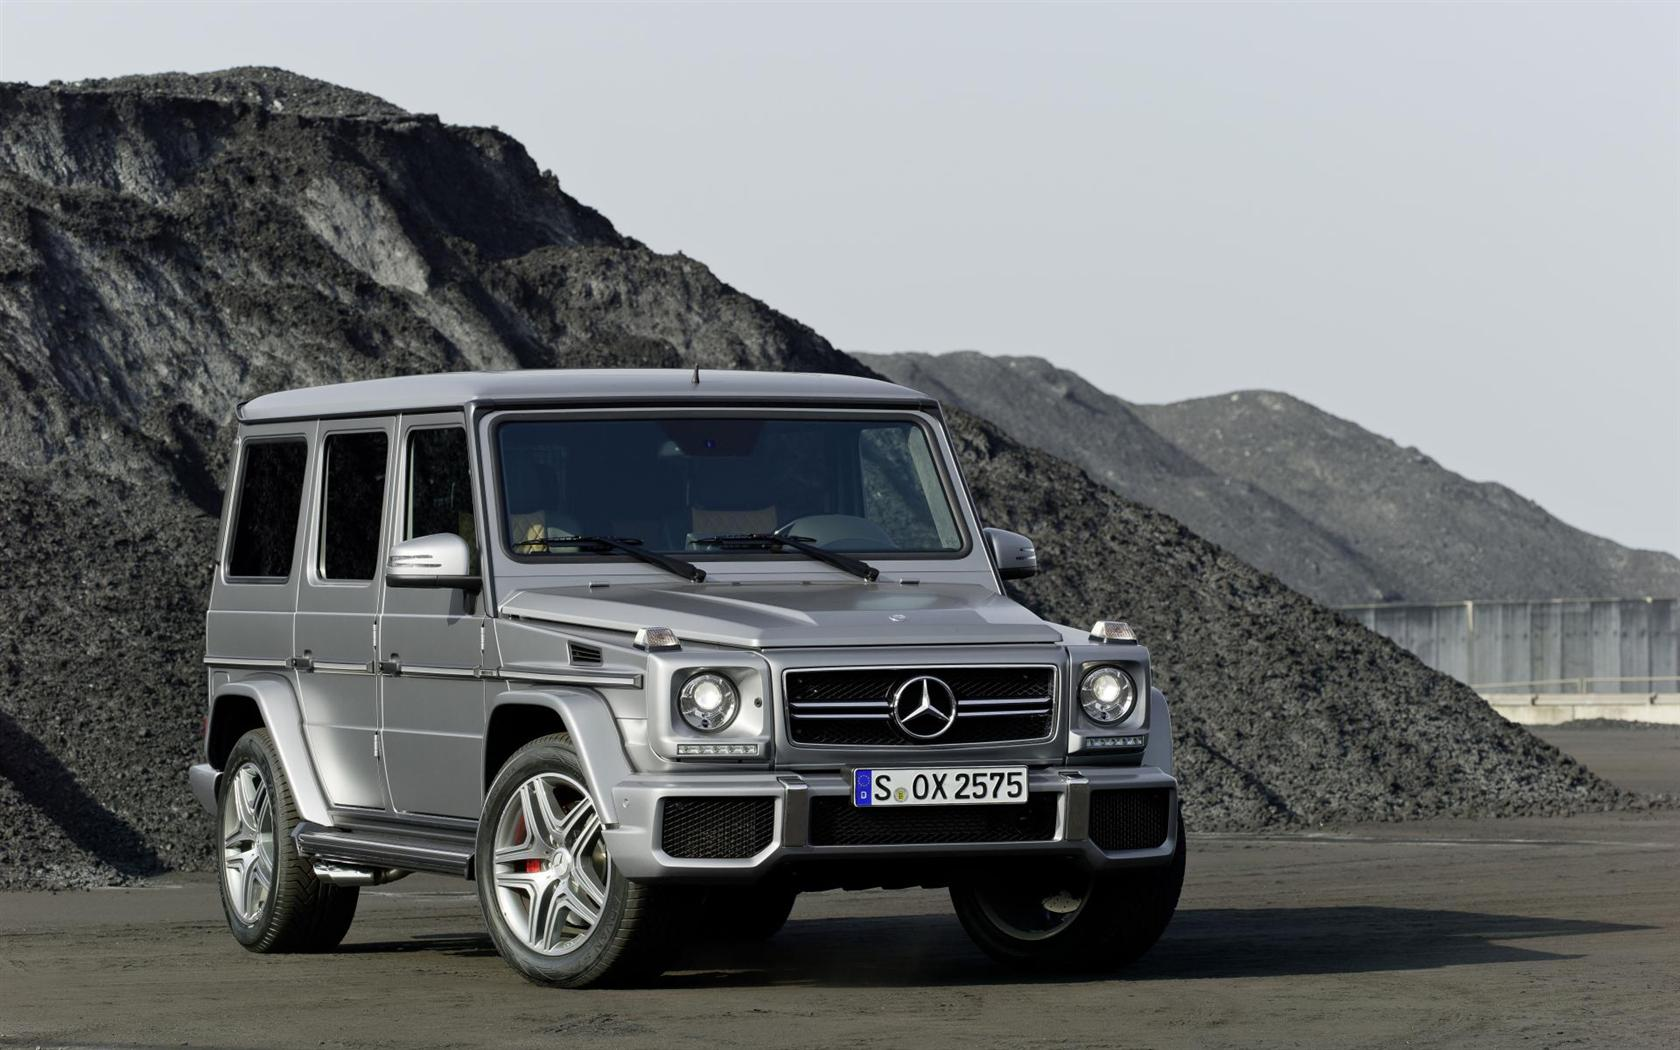 2013 mercedes benz g63 amg images photo 2013 mercedes g63 for 2013 mercedes benz g63 amg price